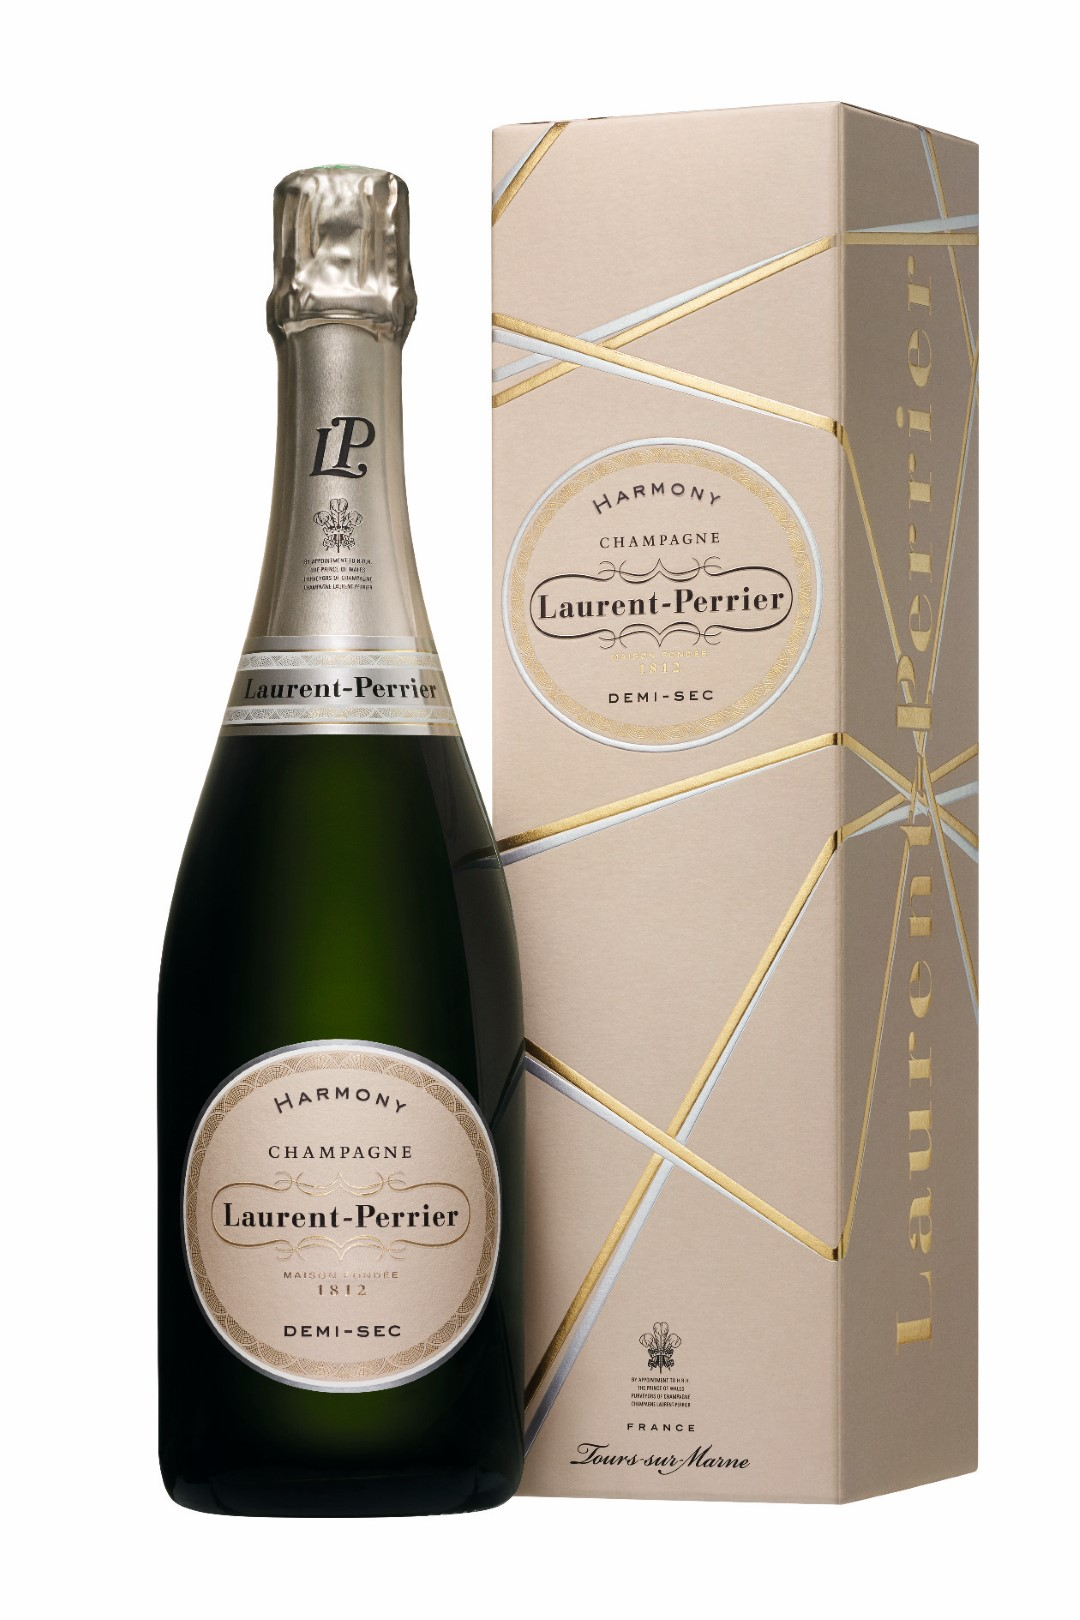 NV Laurent-Perrier Champagne Harmony Demi-Sec